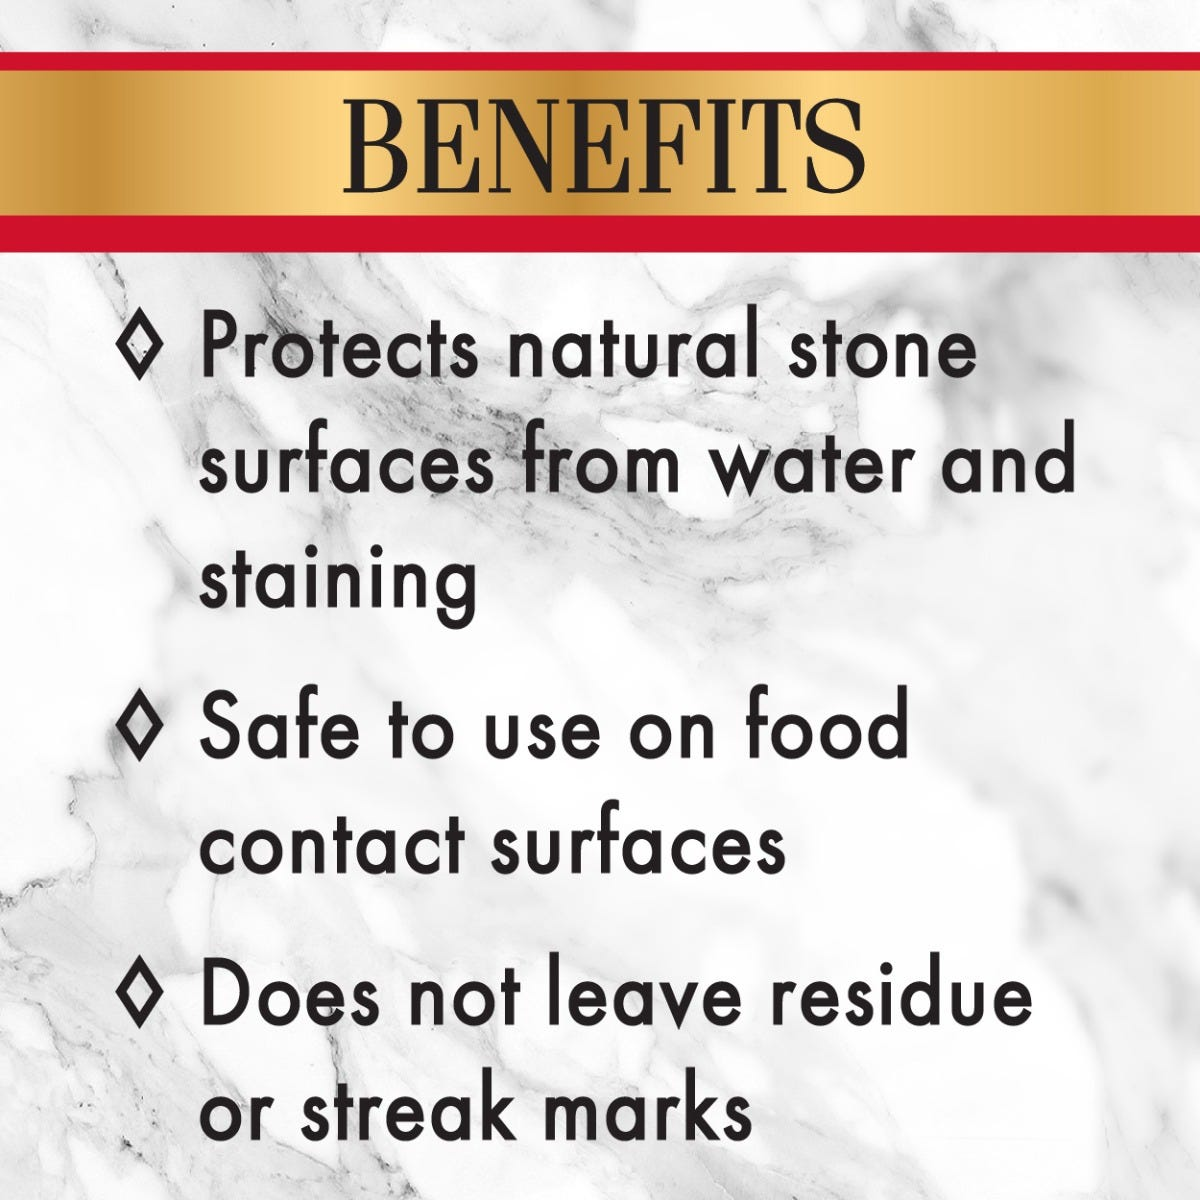 Protects natural stone from stains and can be used on food contact surfaces